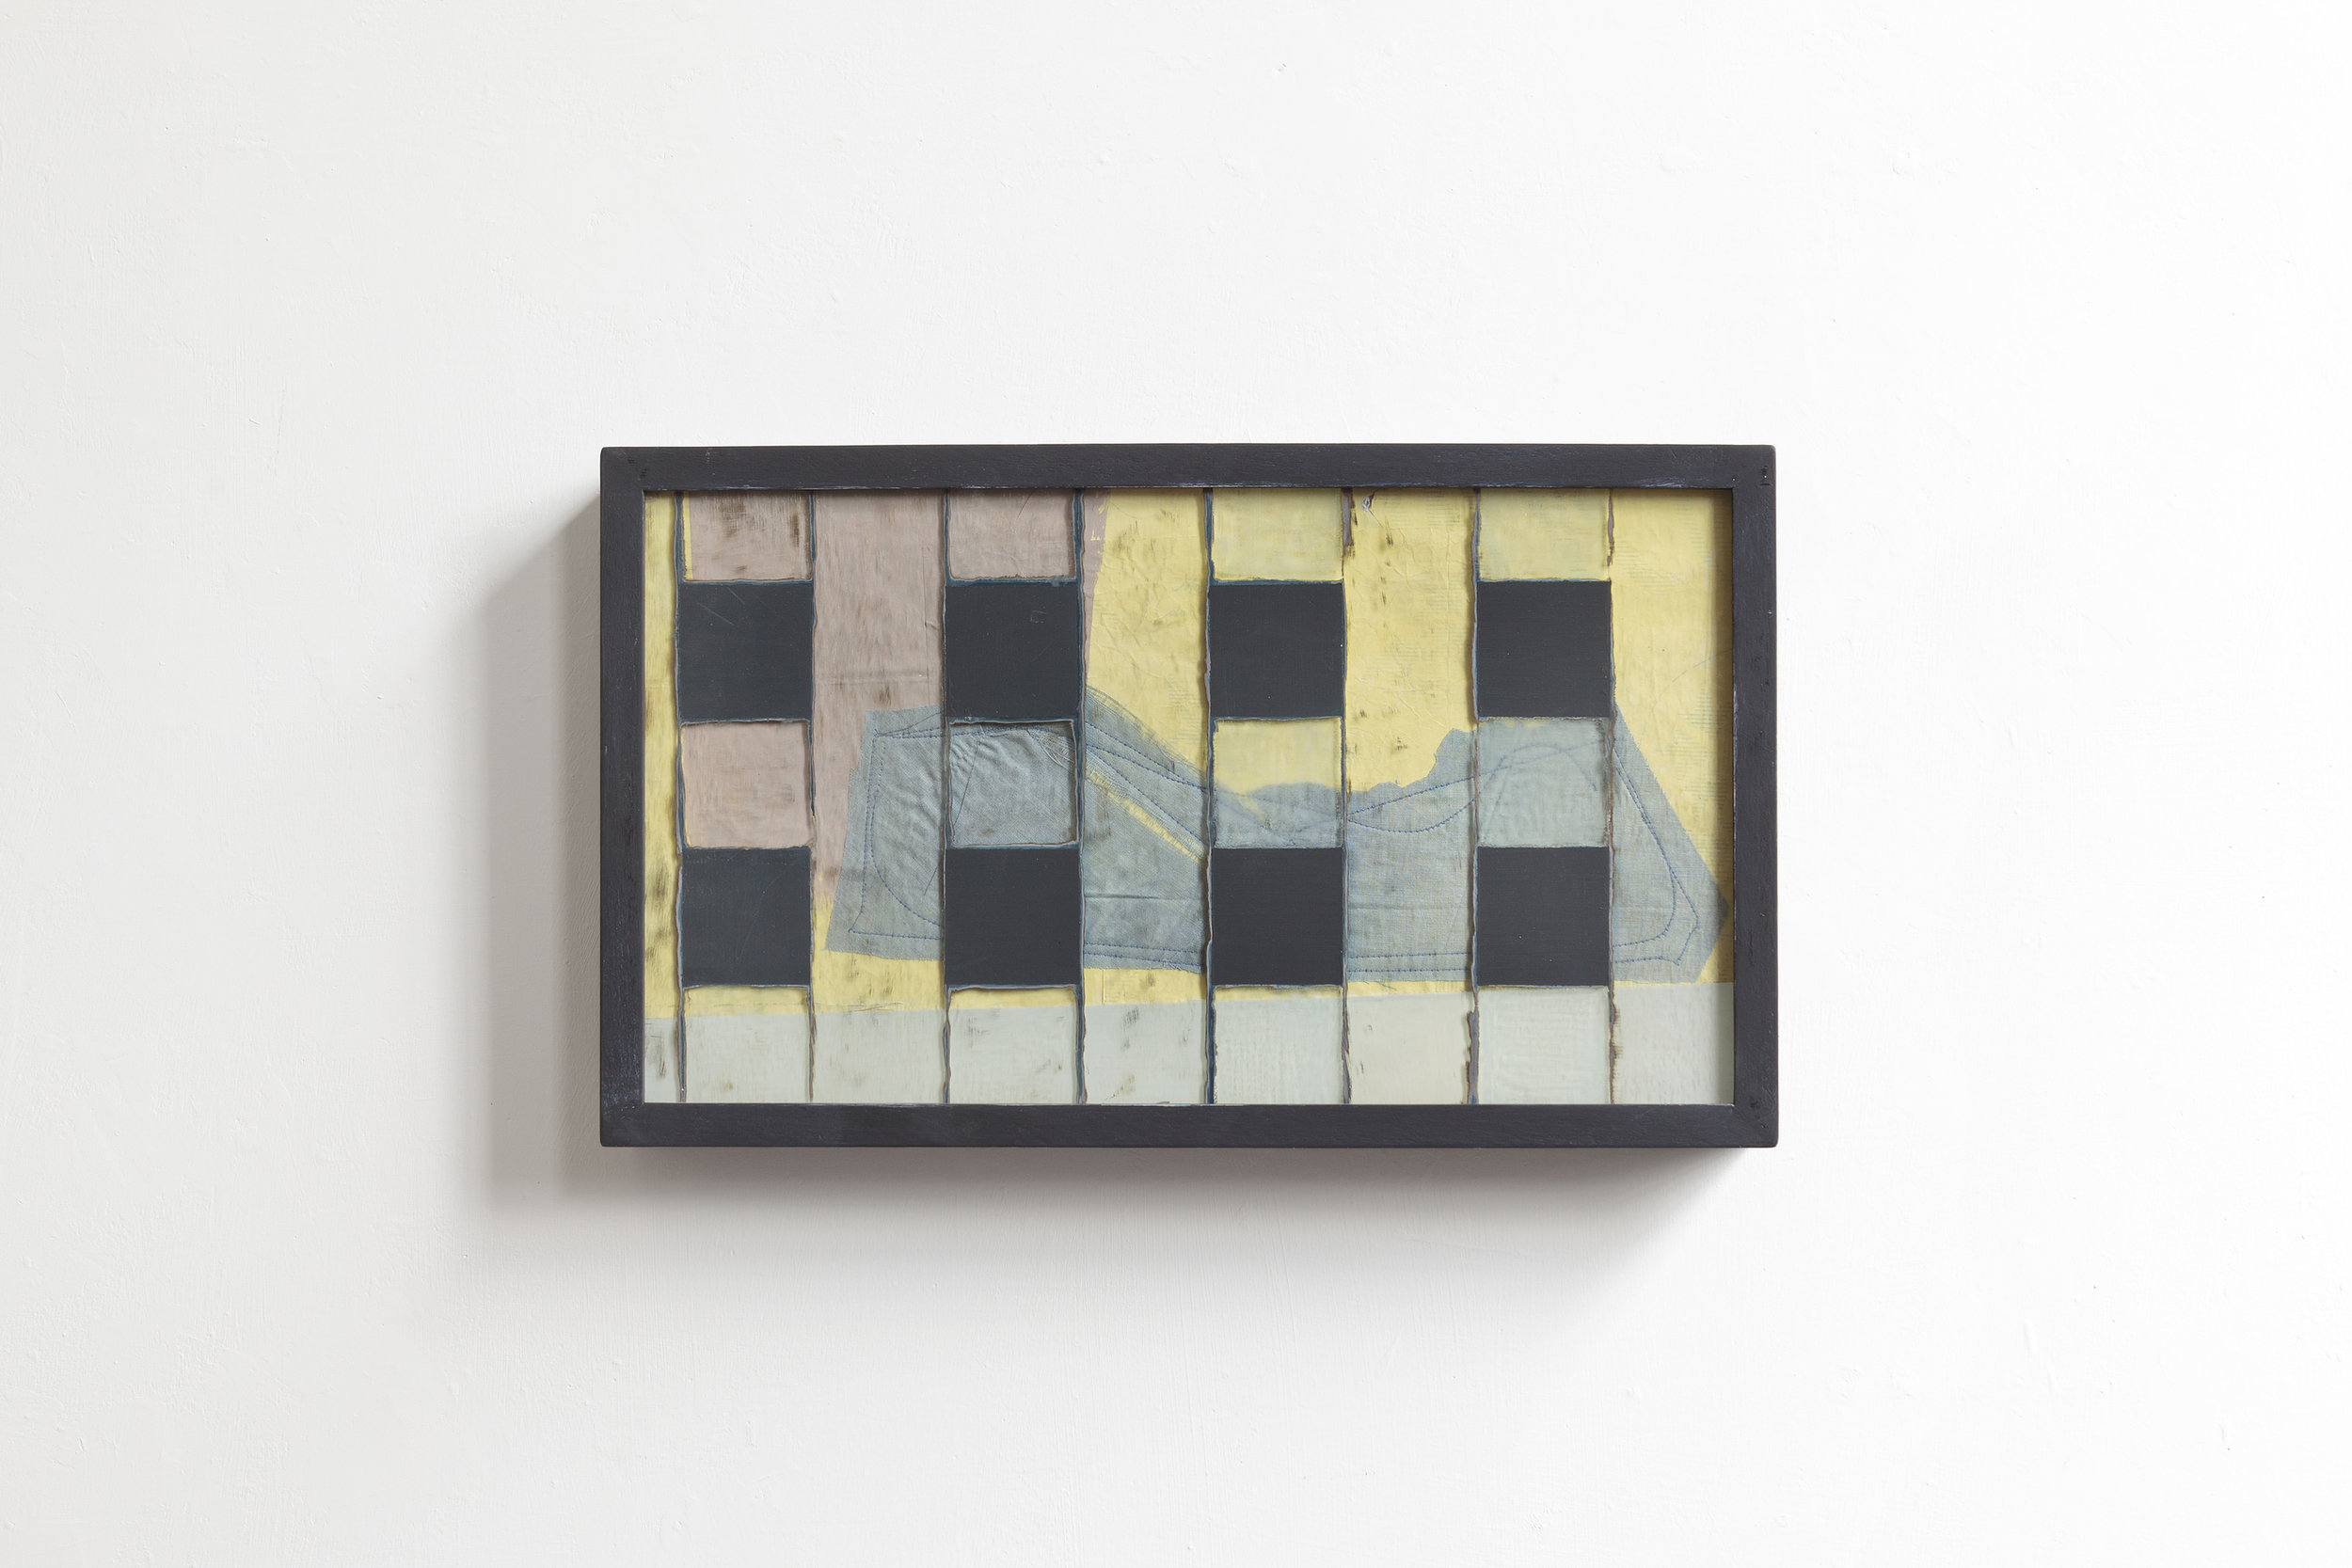 Outside  2017 - erased mirror, painting on wood and fabric - cm 26x44x5